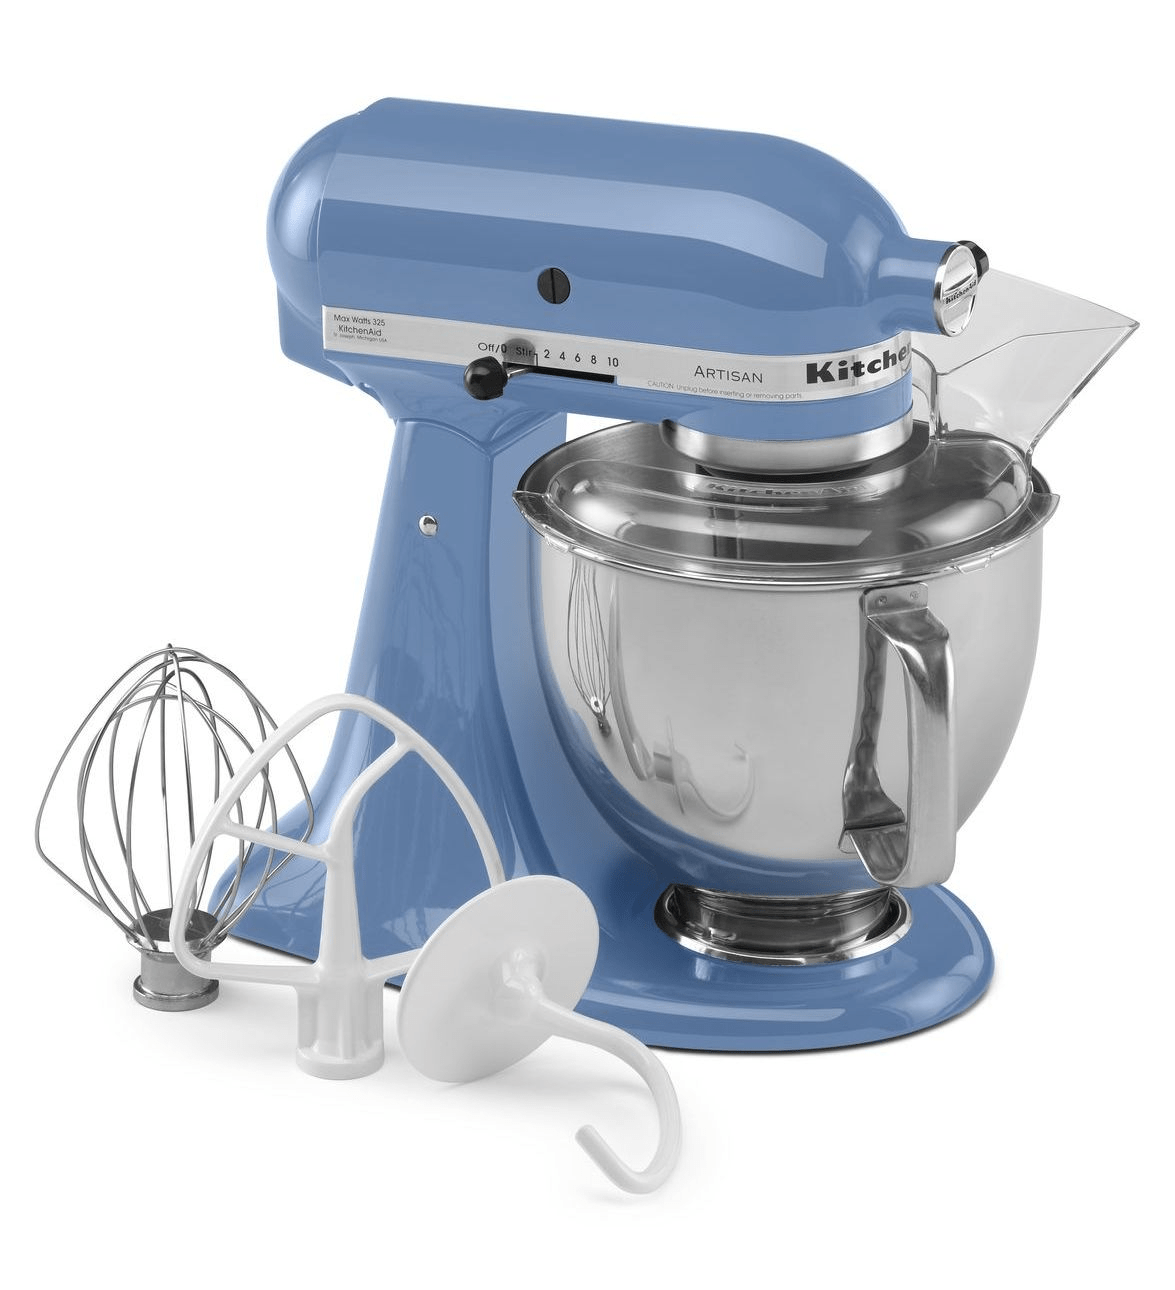 Artisan Series 5 Quart Tilt-Head Stand Mixer